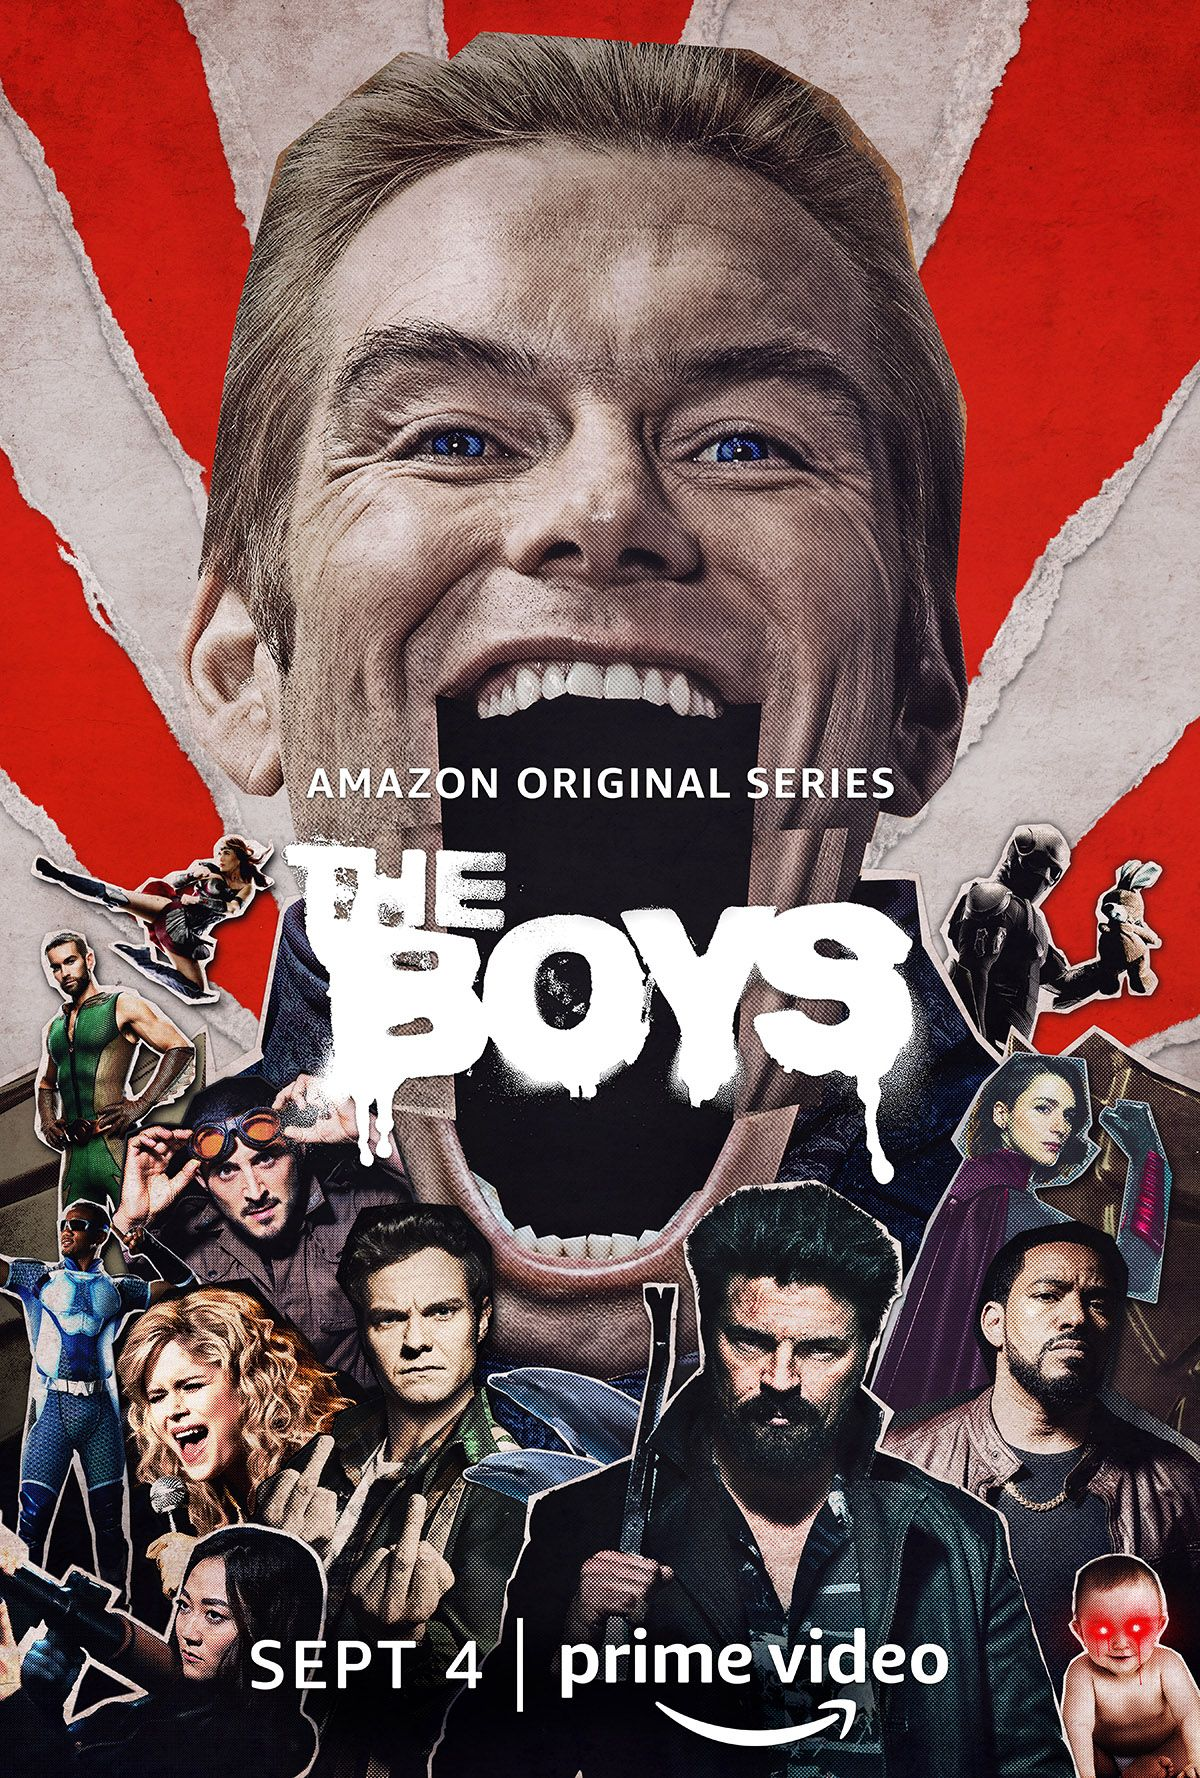 'The Boys' Season 2 Poster